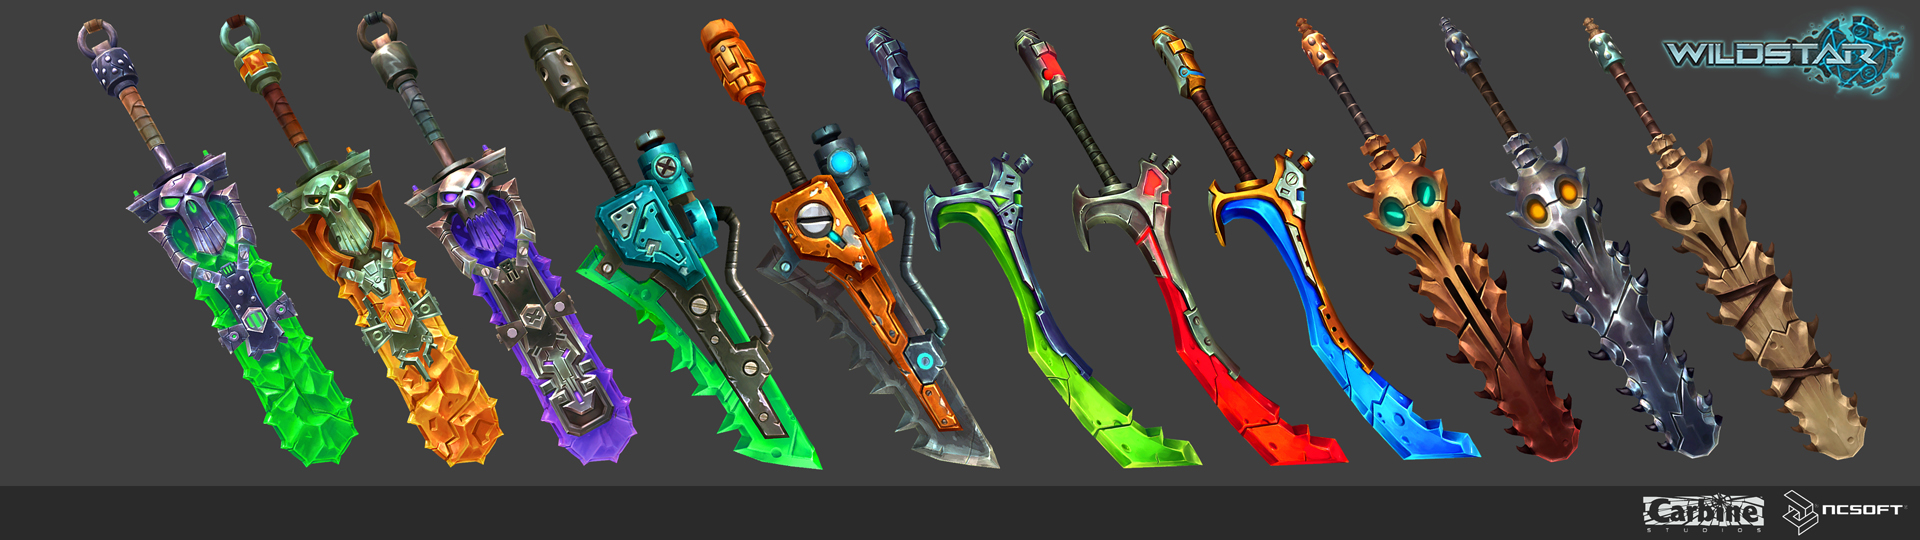 wildstar warrior weapons